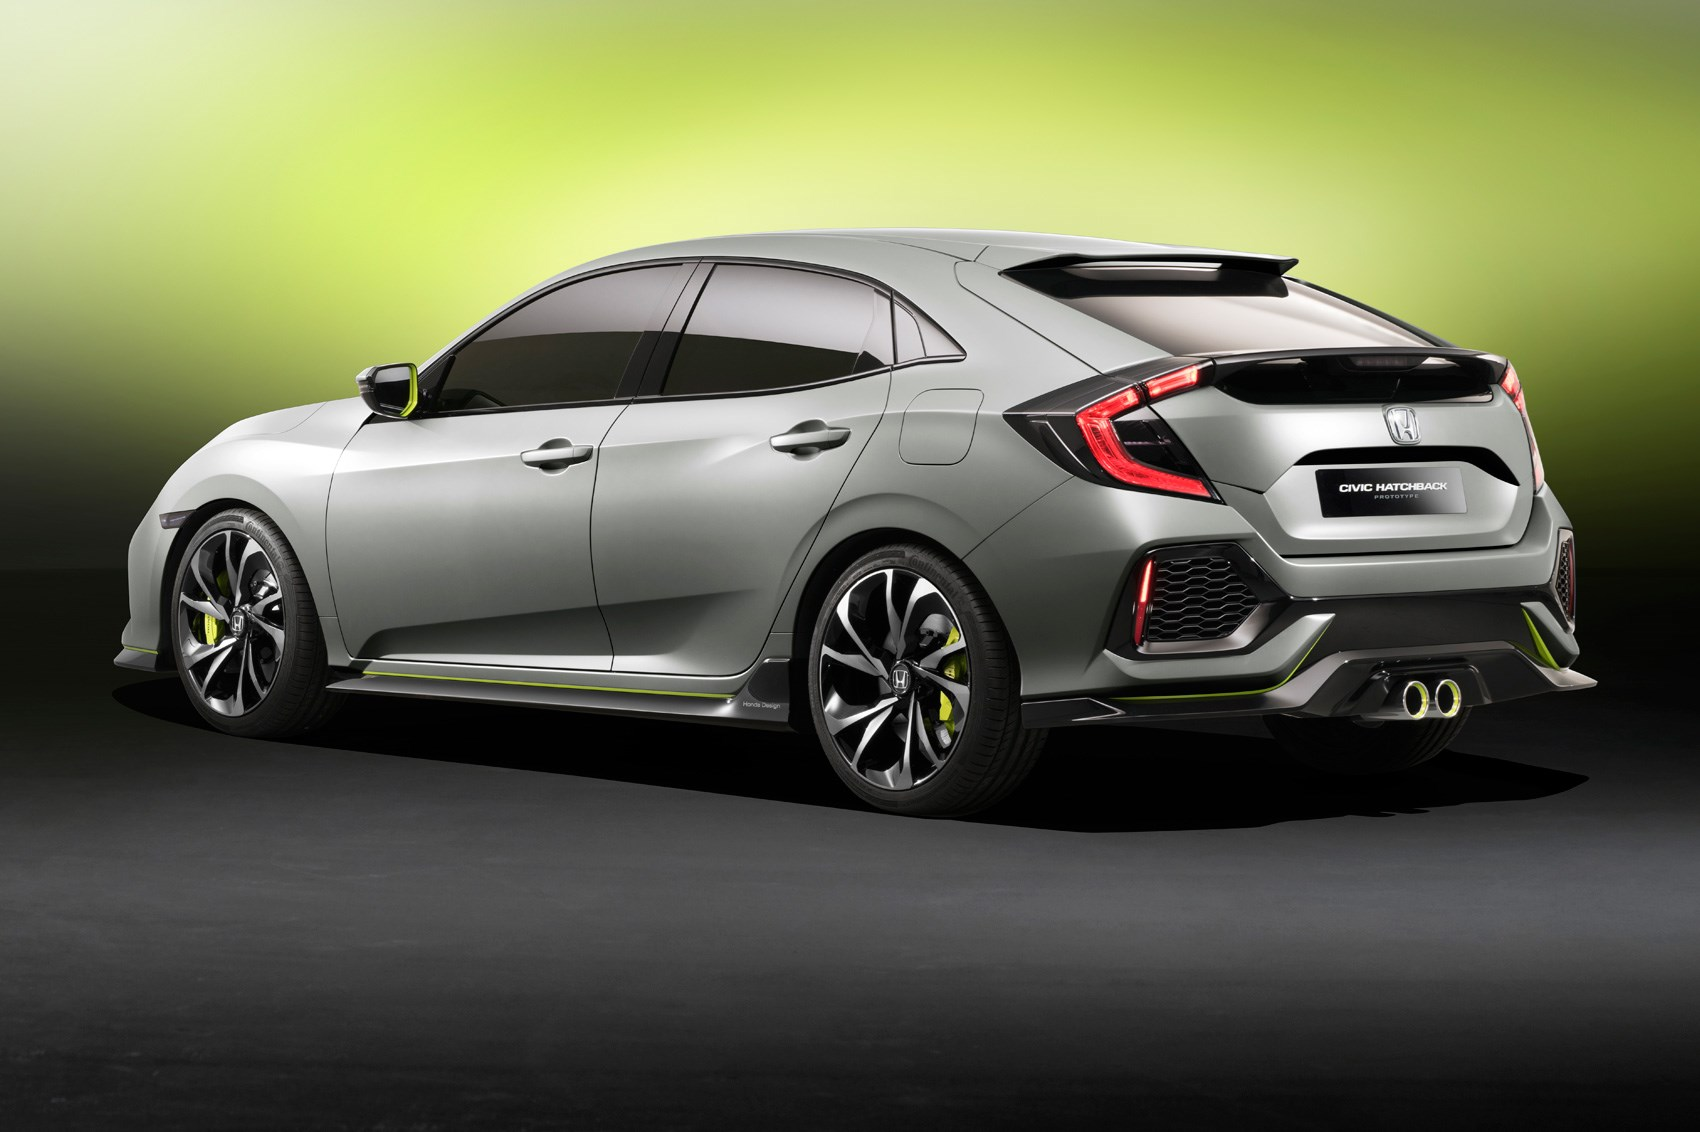 new 2017 honda civic prototype unveiled in geneva by car magazine. Black Bedroom Furniture Sets. Home Design Ideas